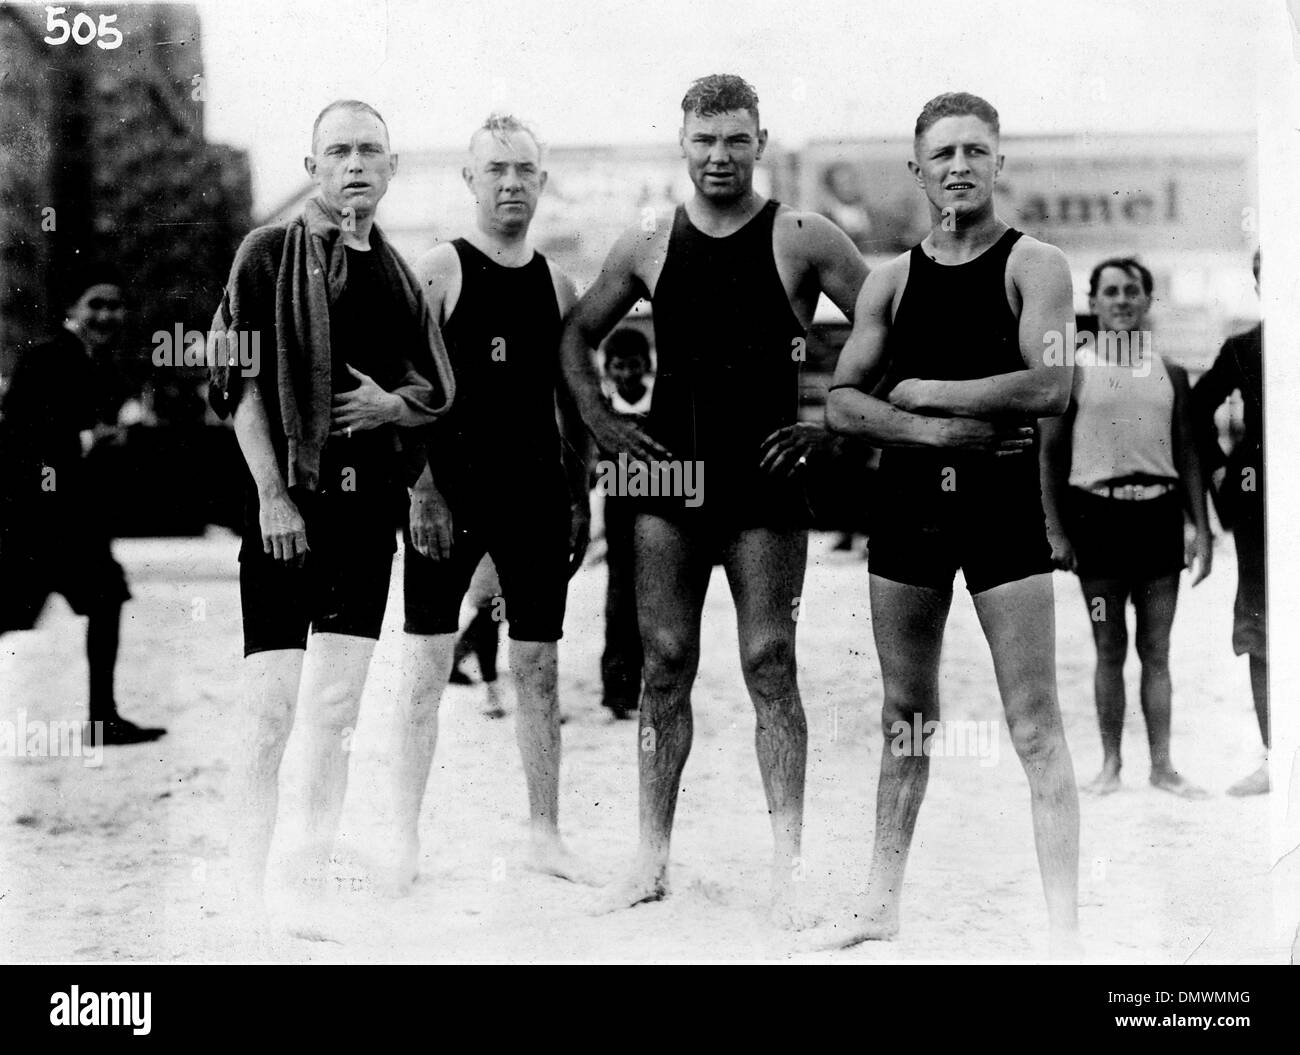 Aug. 5, 1945 - New York, NY, U.S. - JACK DEMPSEY (C) with friends at beach. Jack 'Manassa Mauler' Dempsey (June 24, 1895 - May 31, 1983) was an American boxer who held the world heavyweight title from 1919 to 1926. Dempsey's aggressive style and punching power made him one of the most popular boxers in history. Many of his fights set financial and attendance records. FILE: c. 1920- - Stock Image